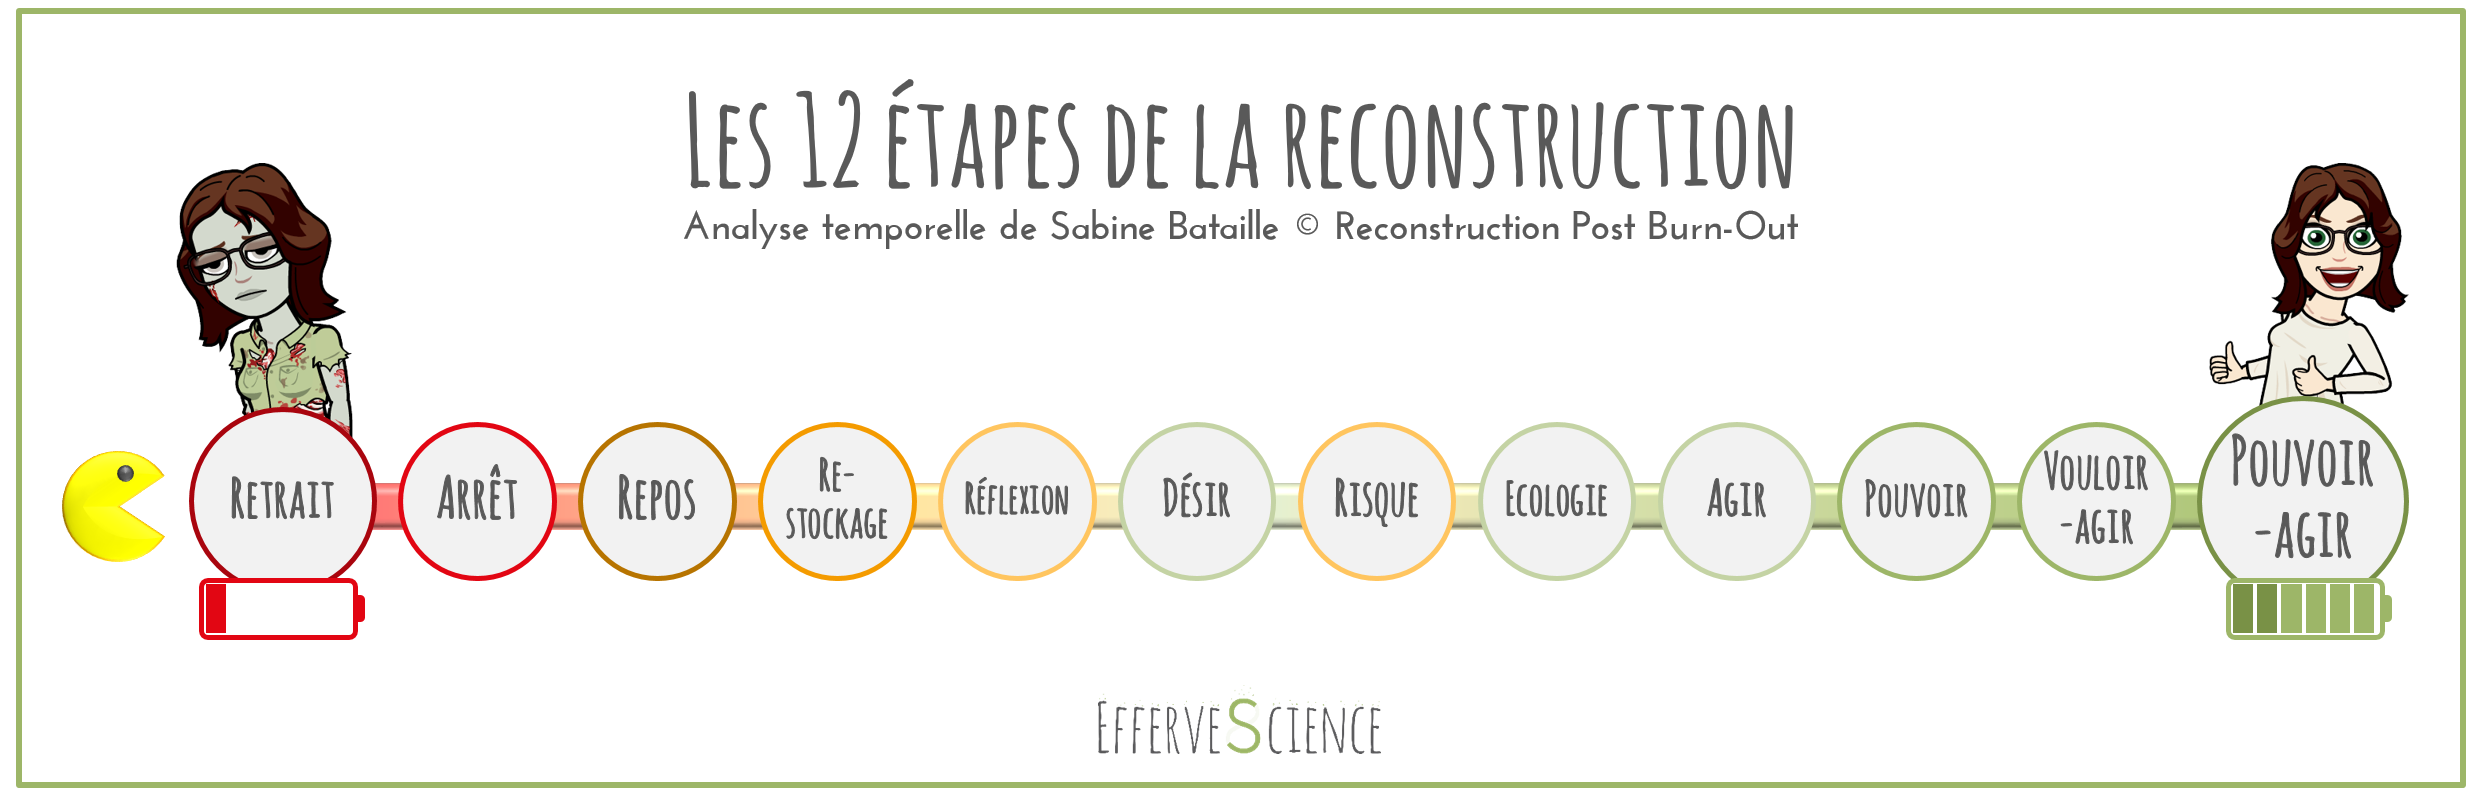 Les 12 étapes temporelles de la reconstruction post burn-out par Sabine Bataille